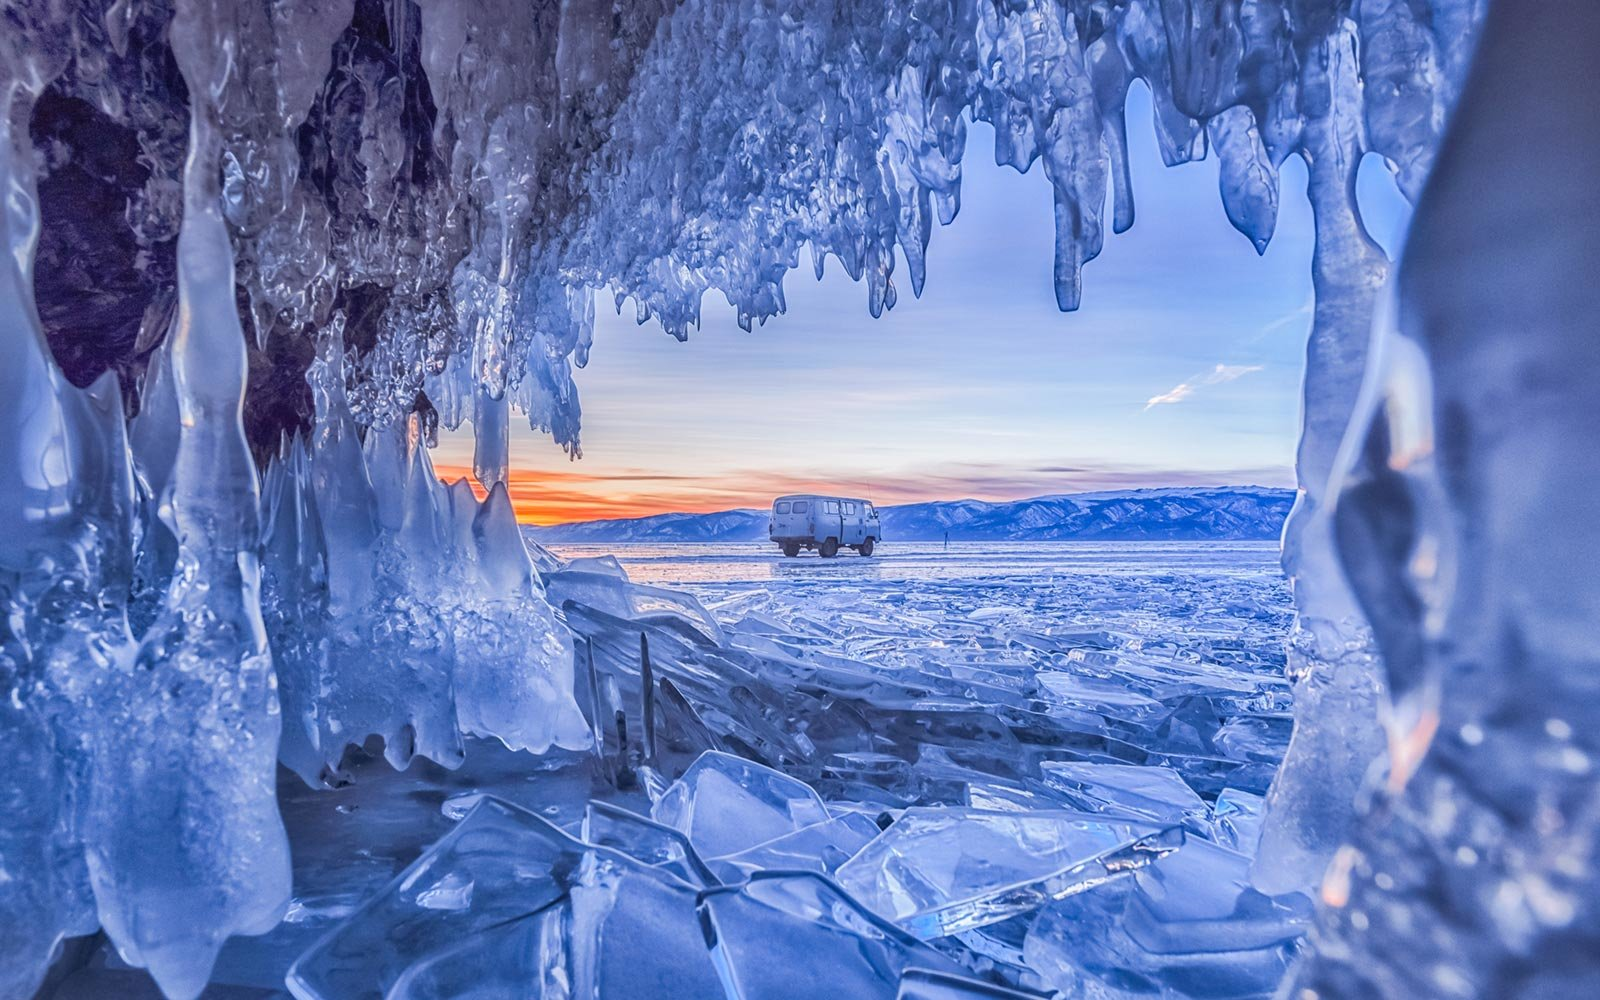 ice-cave-baikal-lake-russia-ICEFORMS1217.jpg